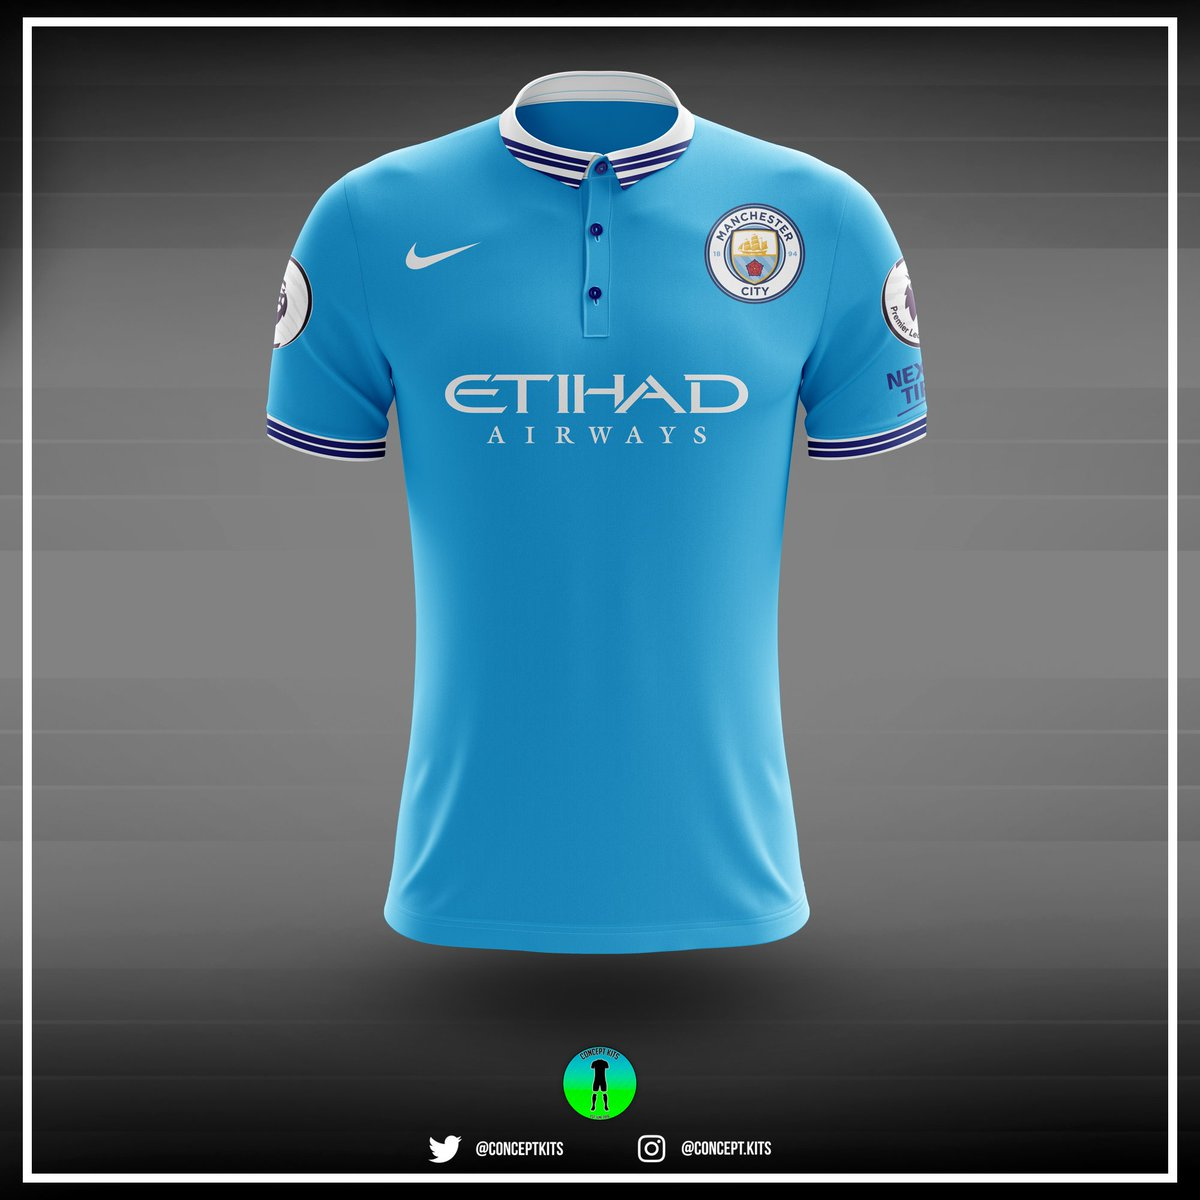 Concept Kits On Twitter Manchester City Football Club Home Away Kit Concepts 2017 18 Mcfc Citizens Mancity Mancityfc Manchester Manchestercity Nike Etihad Https T Co Fmnztyqgip